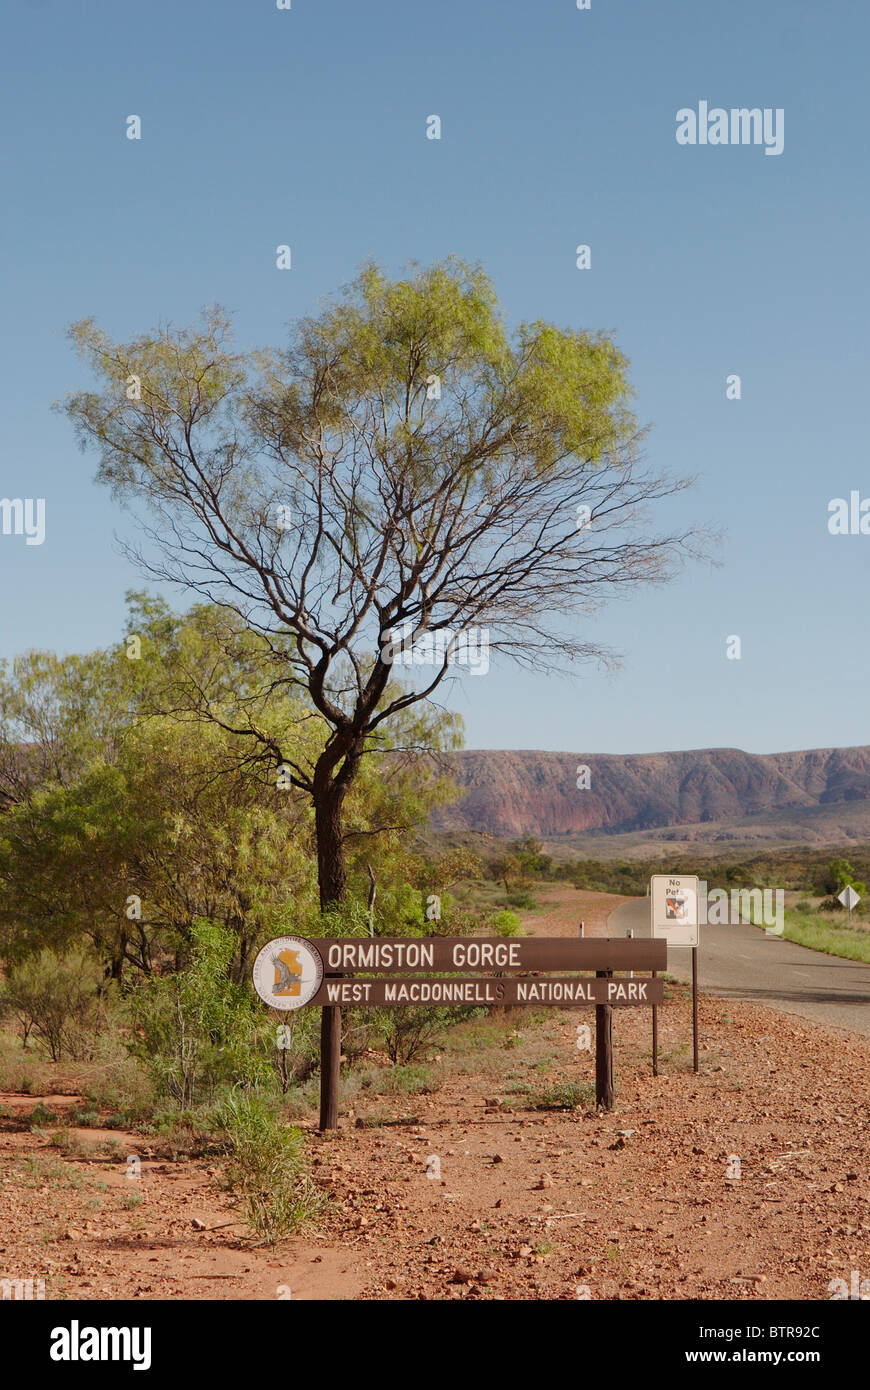 Australia, West MacDonnell National Park, Ormiston Gorge, National park sign and road - Stock Image